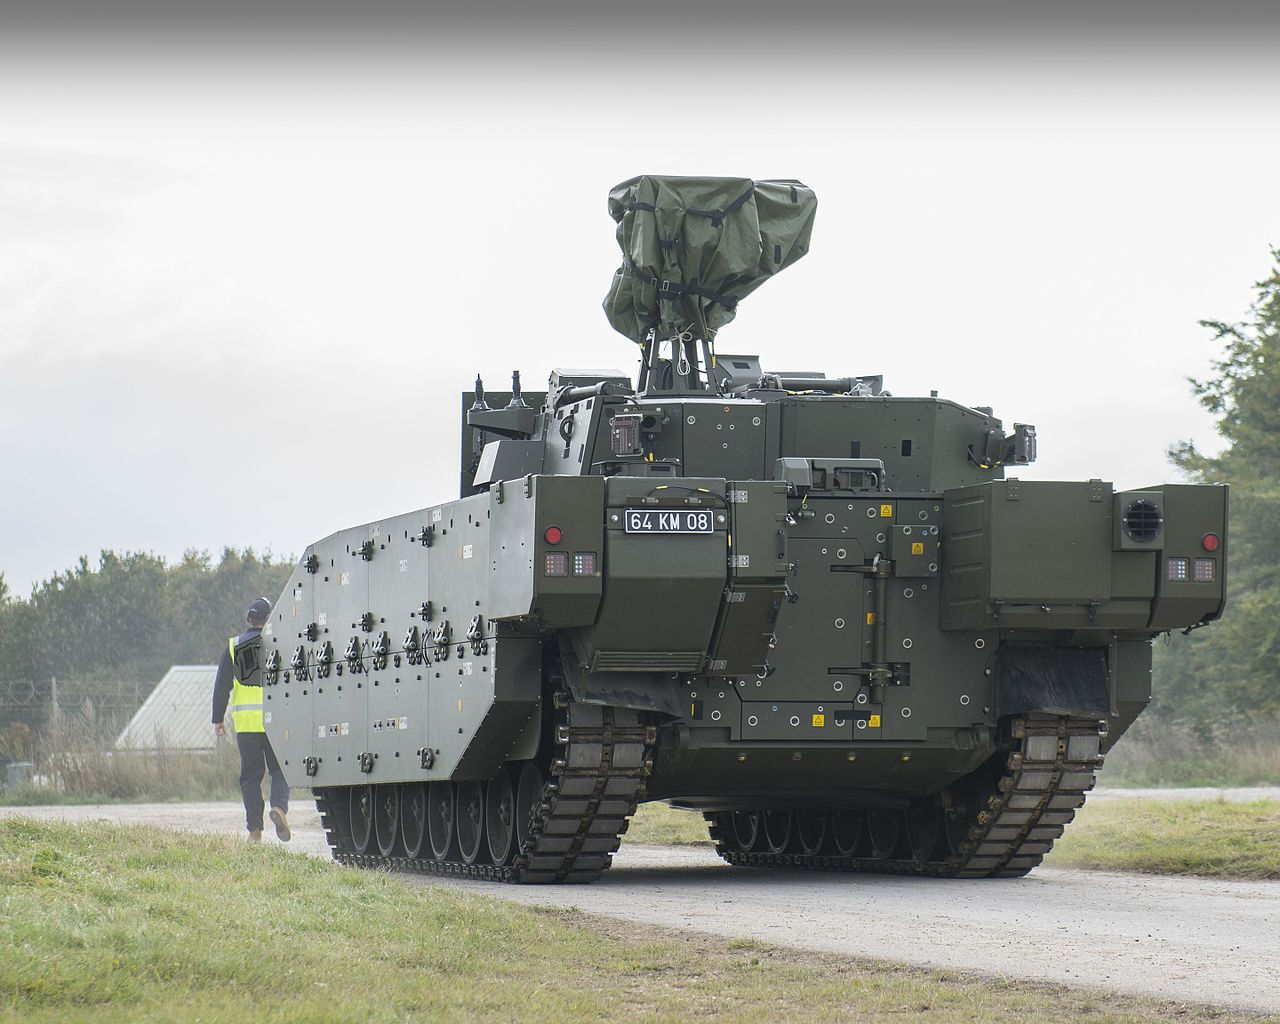 AJAX_Armoured_Vehicle_at_a_3_Div_Combined_Arms_Manoeuvre_Demonstration_MOD_45161419.jpg